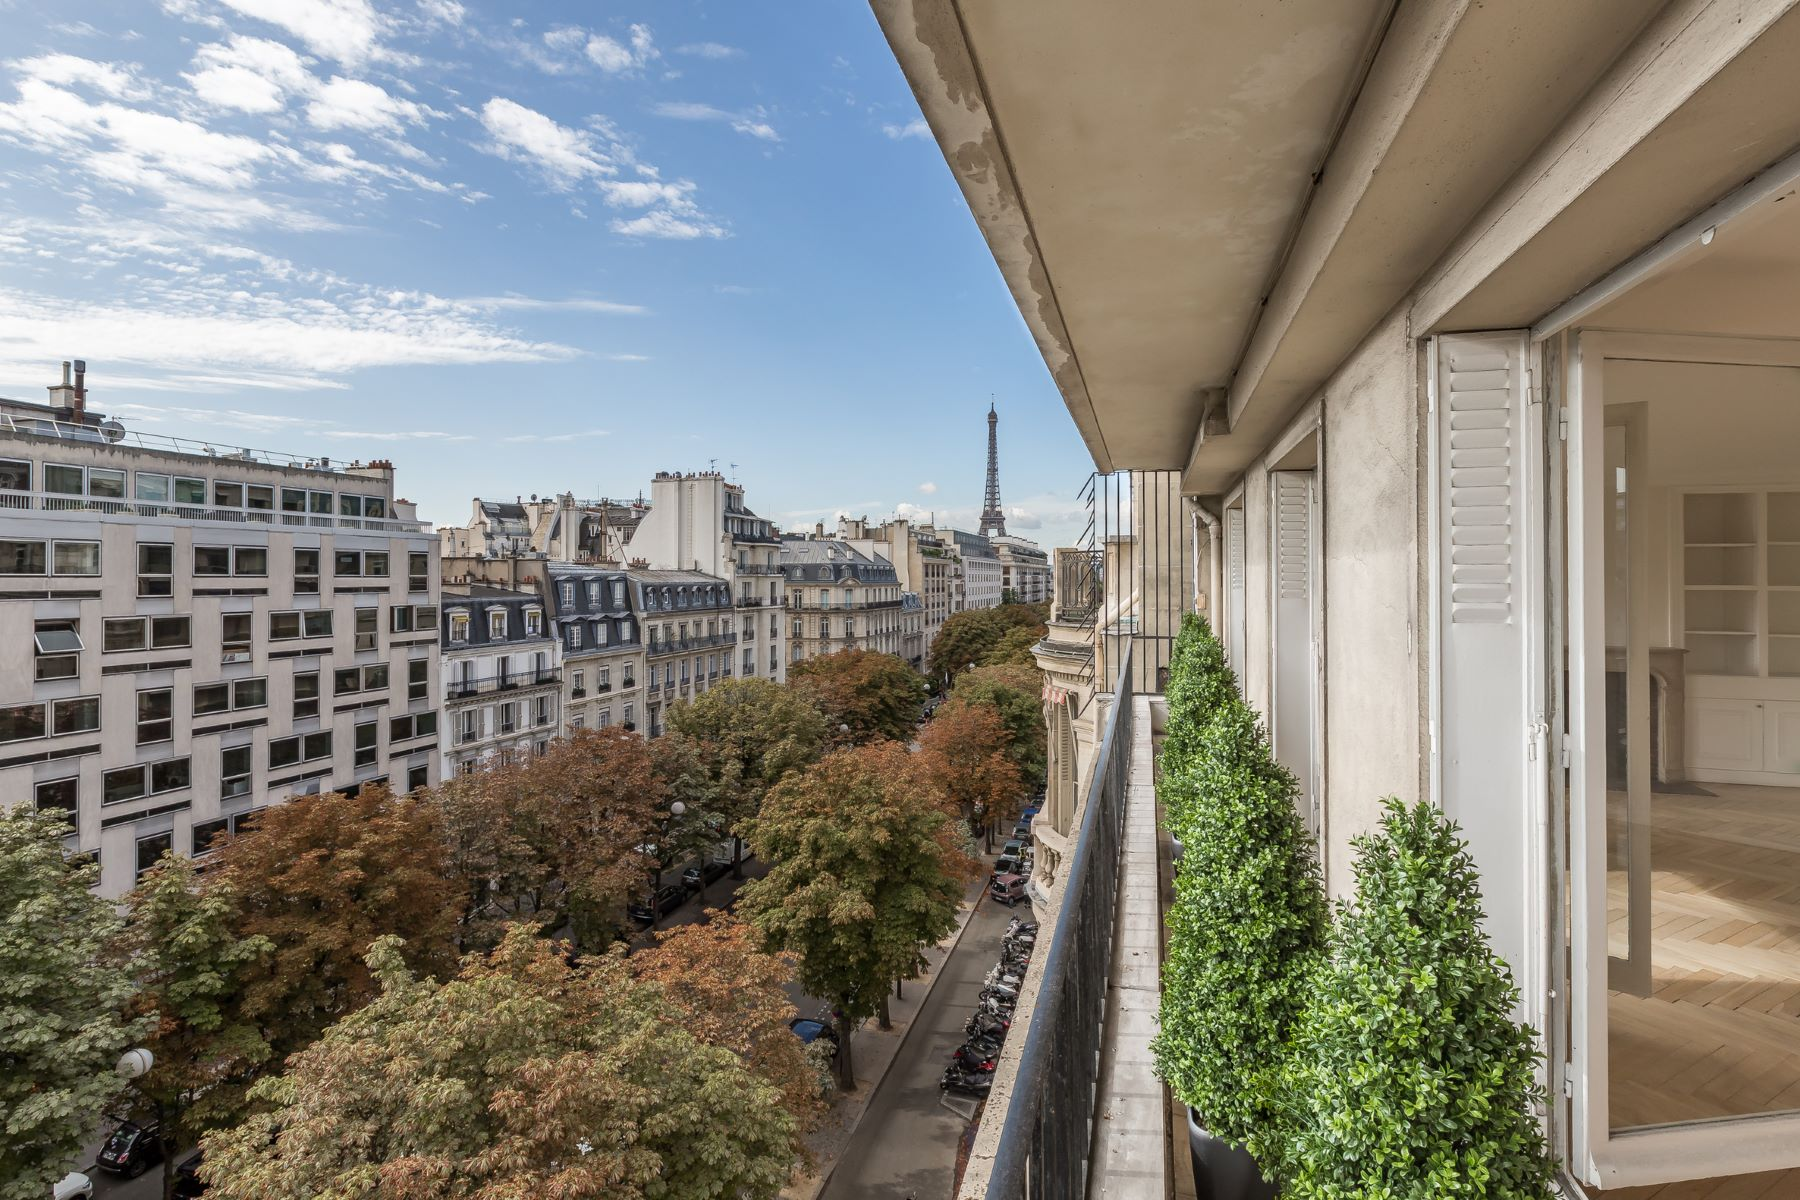 Maison unifamiliale pour l à vendre à Avenue Montaigne / Triangle d'or Paris, Paris, 75008 France